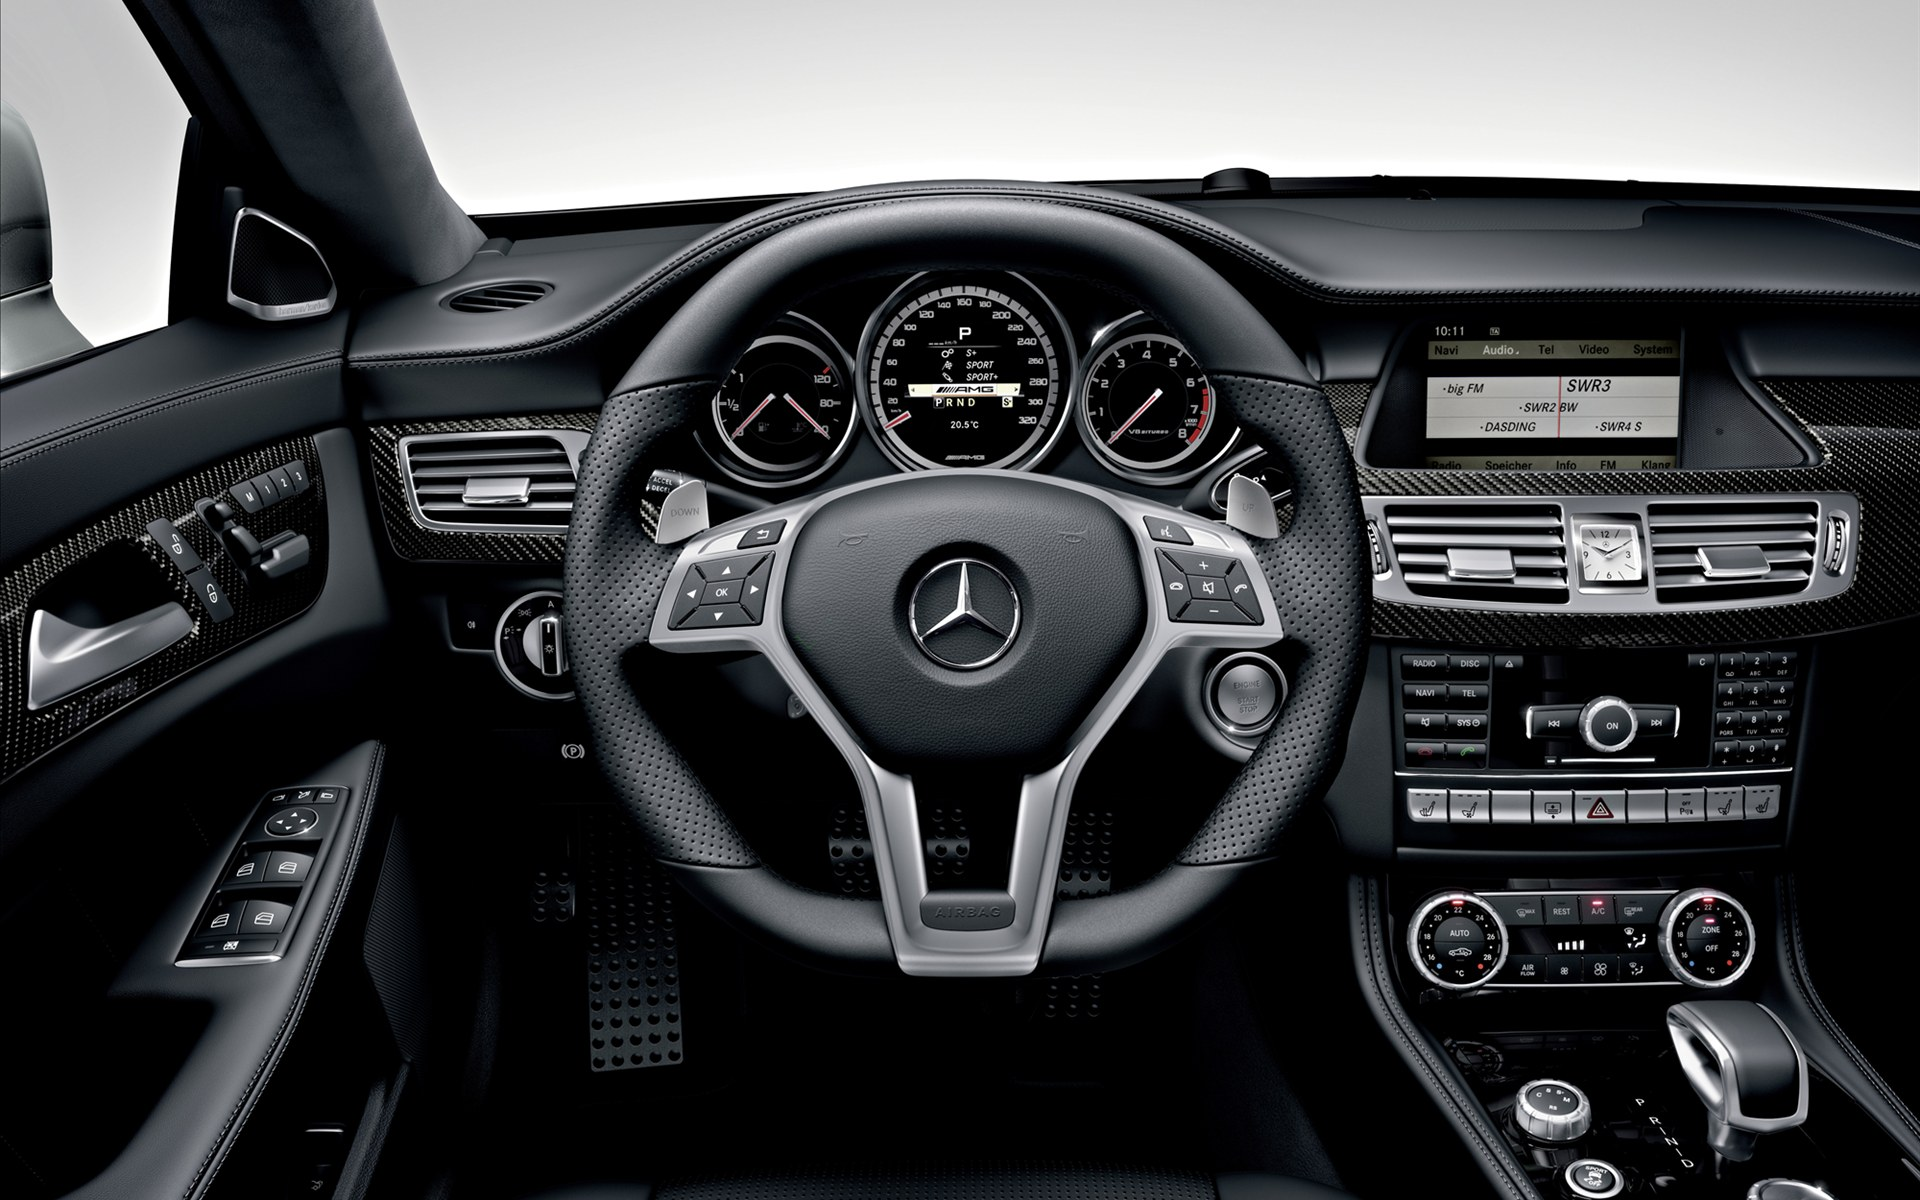 Amazing car interior wallpaper 1920x1200 82744 for Amazing interior designs wallpapers